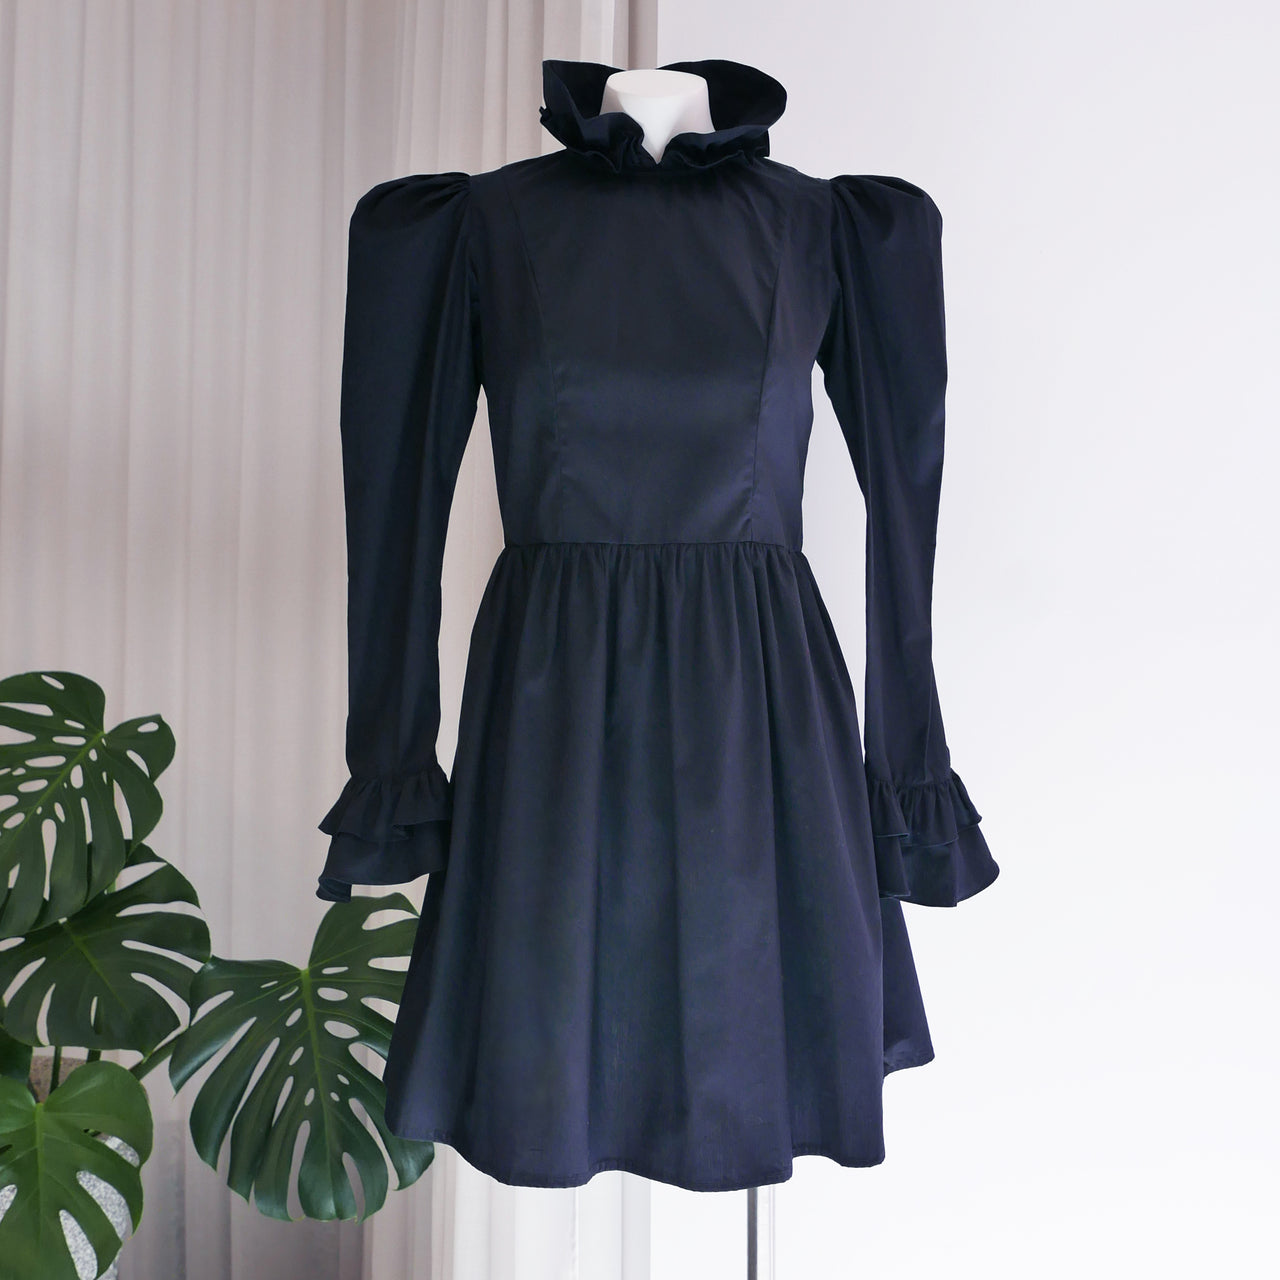 Mini Prairie Dress in Black Cotton